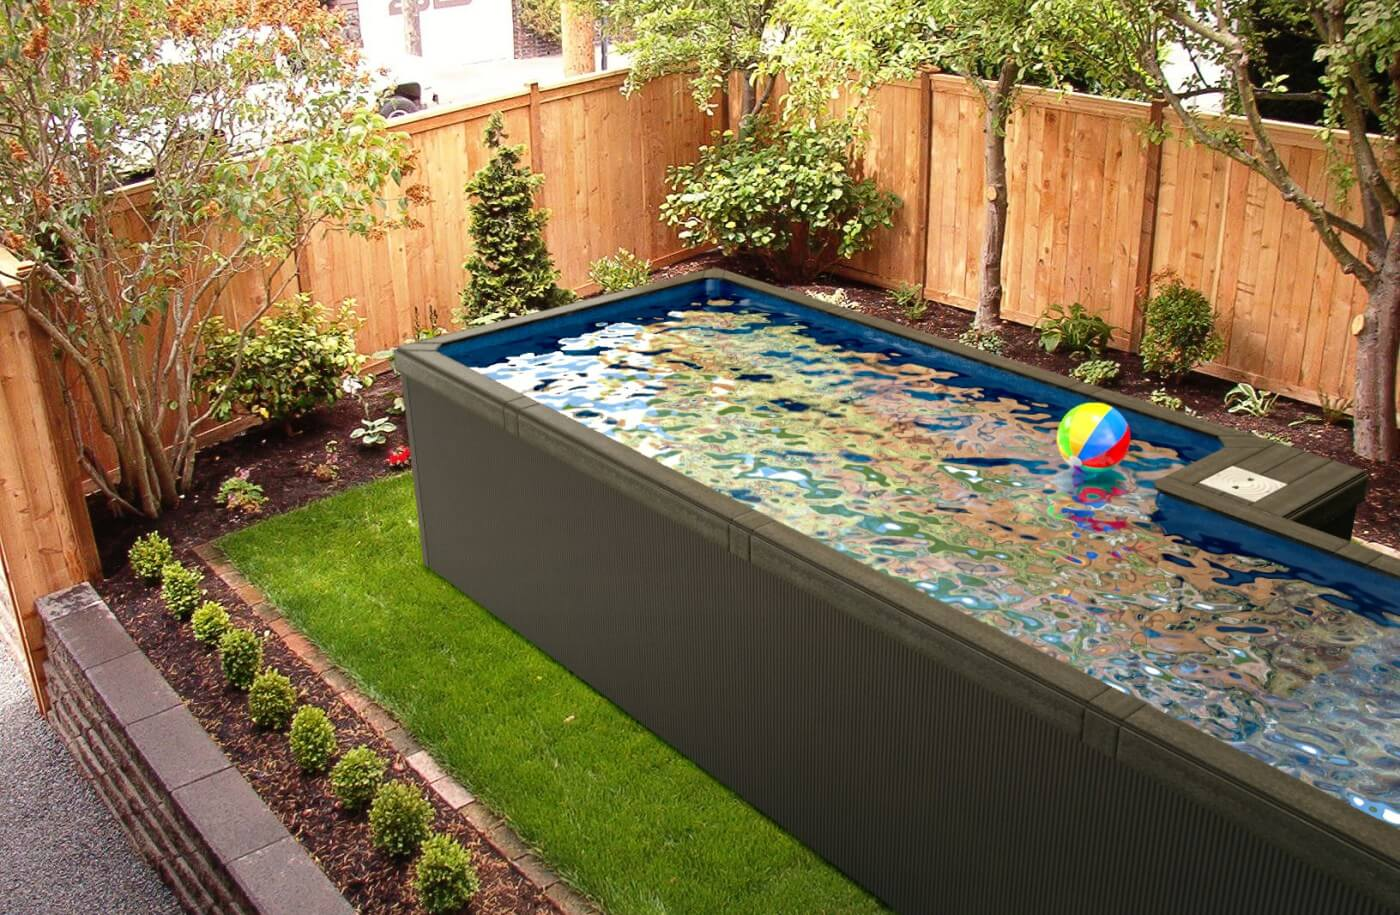 Cool Pools The Best Above Ground Pool Ideas To Transform Your Backyard